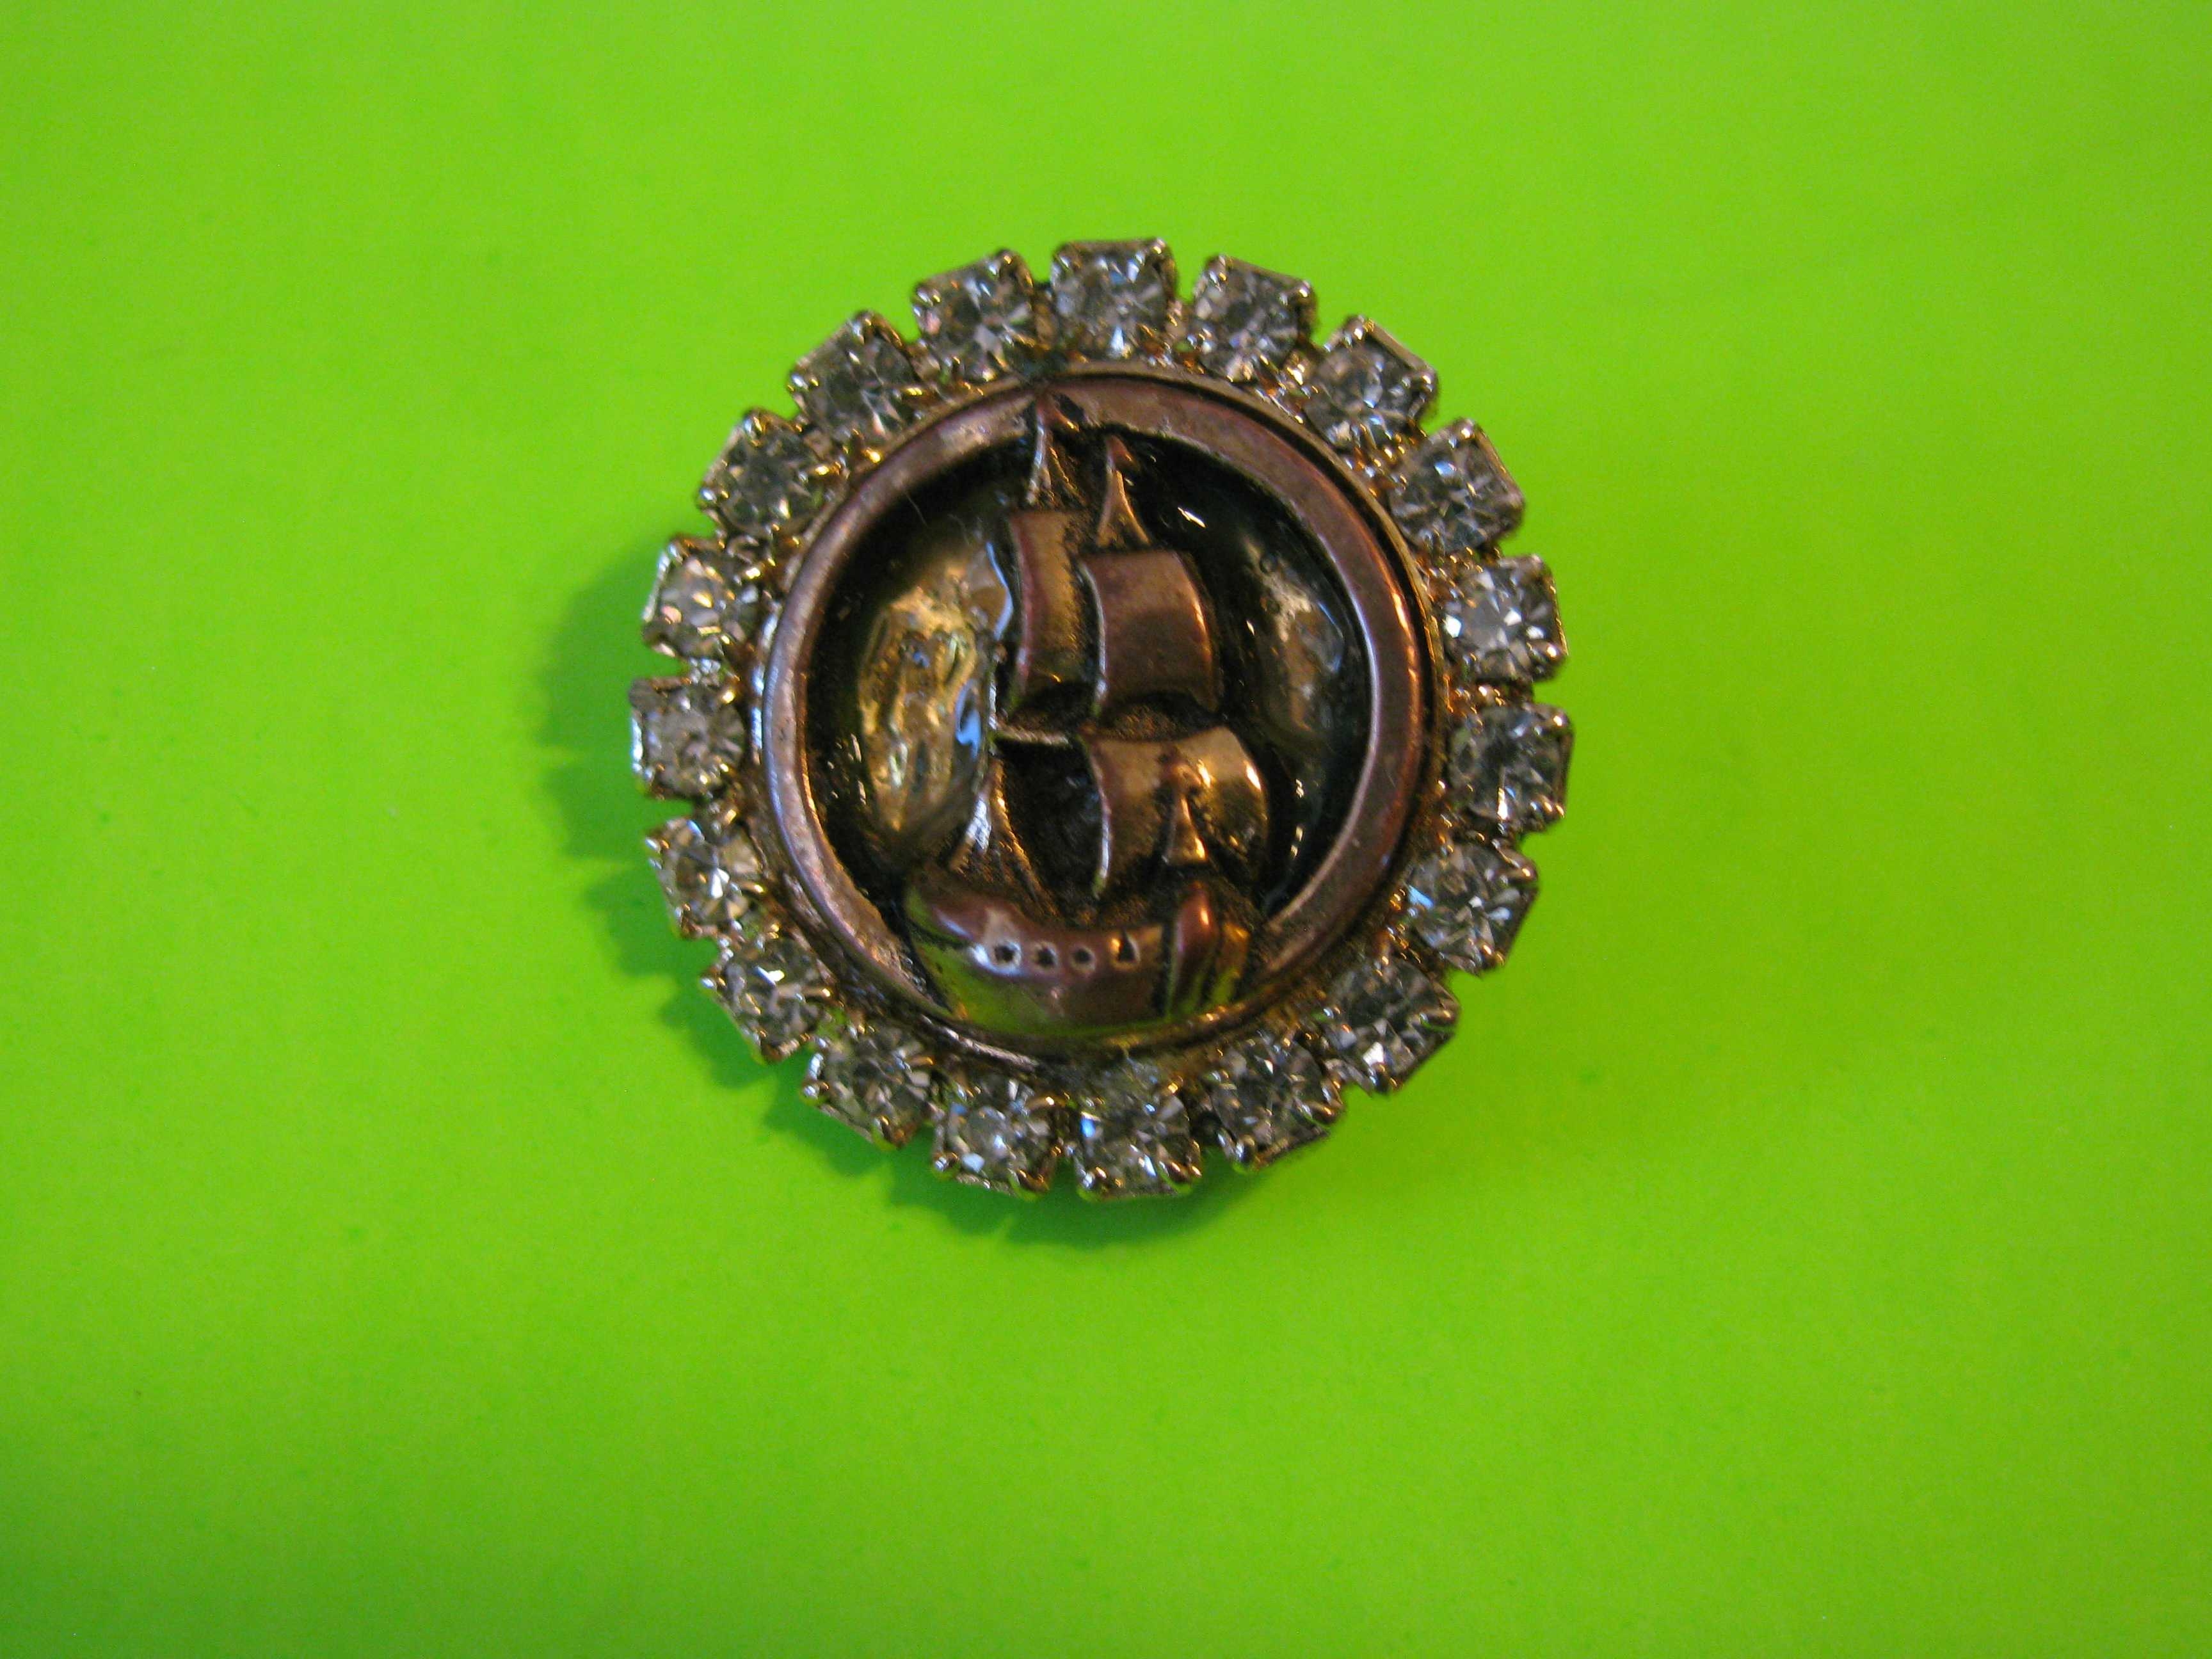 Galleon Style Sailing Ship on Metal & Brass Circle Button with Surrounding Stones